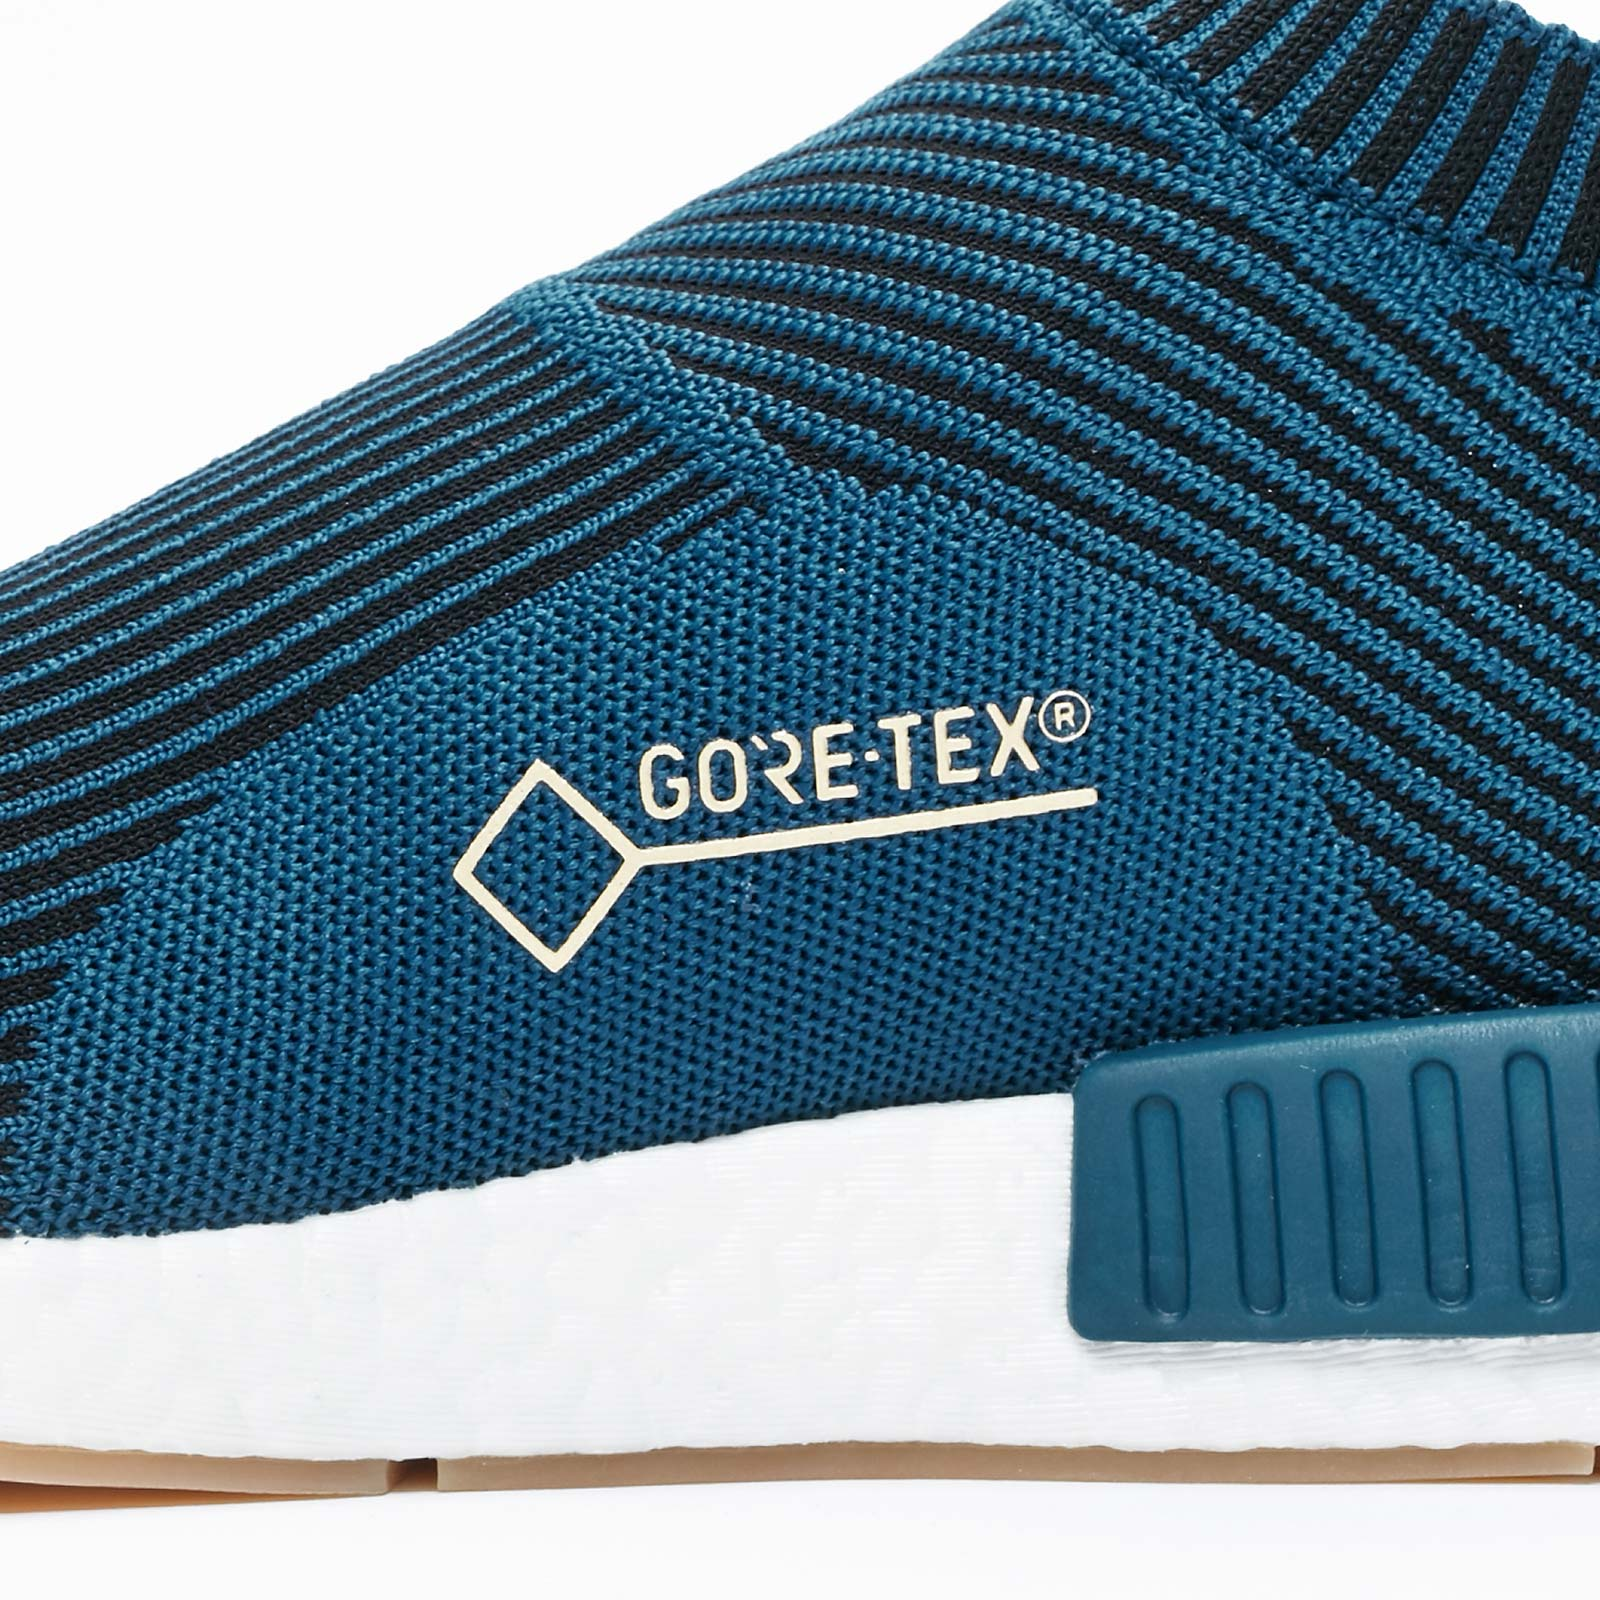 36771684e adidas Originals NMD CS1 GORE-TEX Primeknit - SNS Exclusive - 7. Close